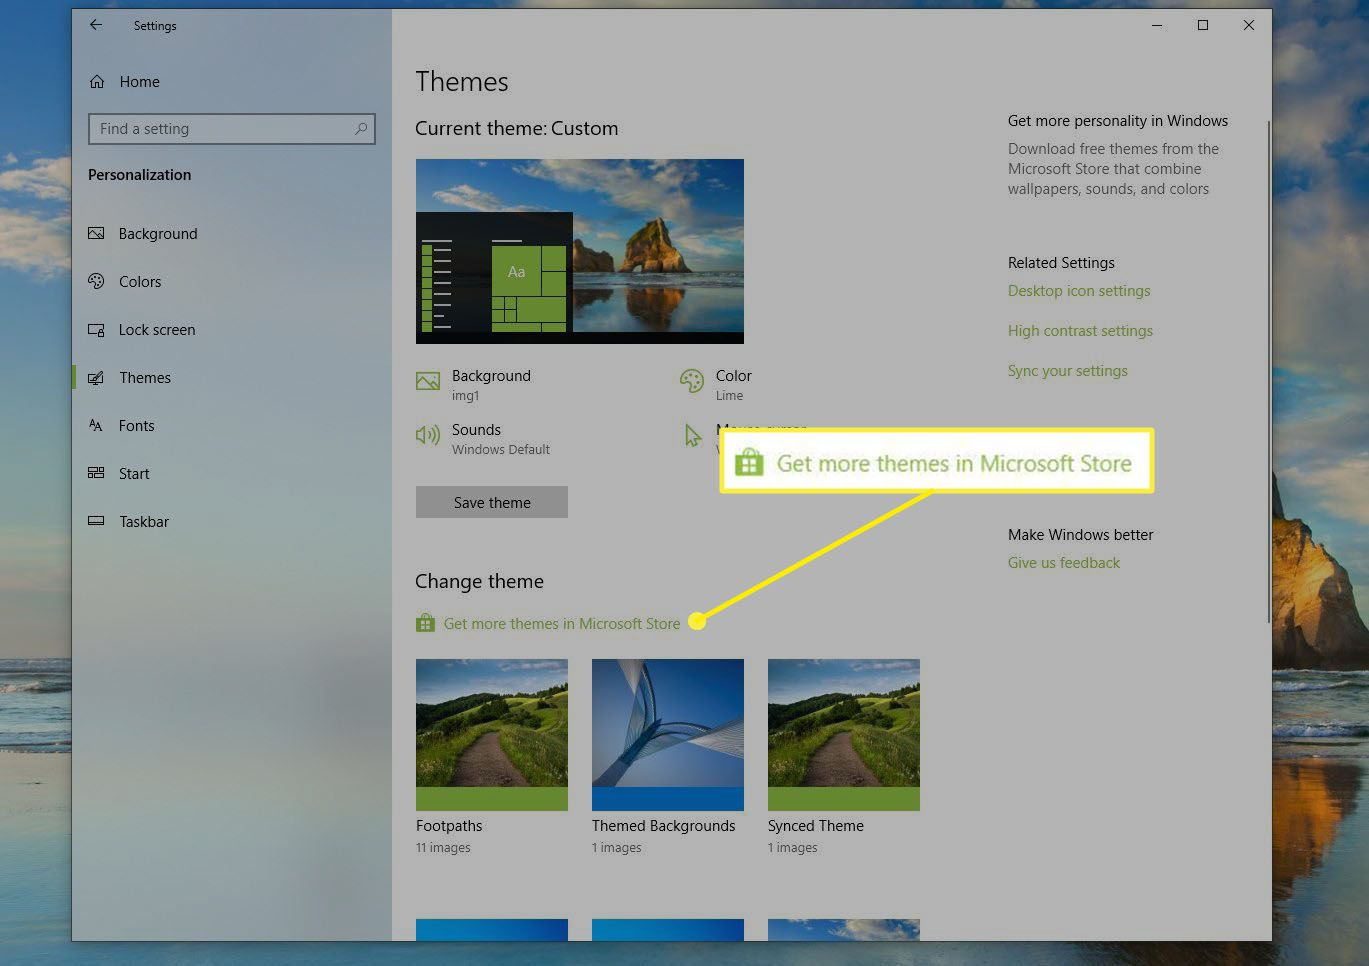 Get More Themes in Microsoft Store link